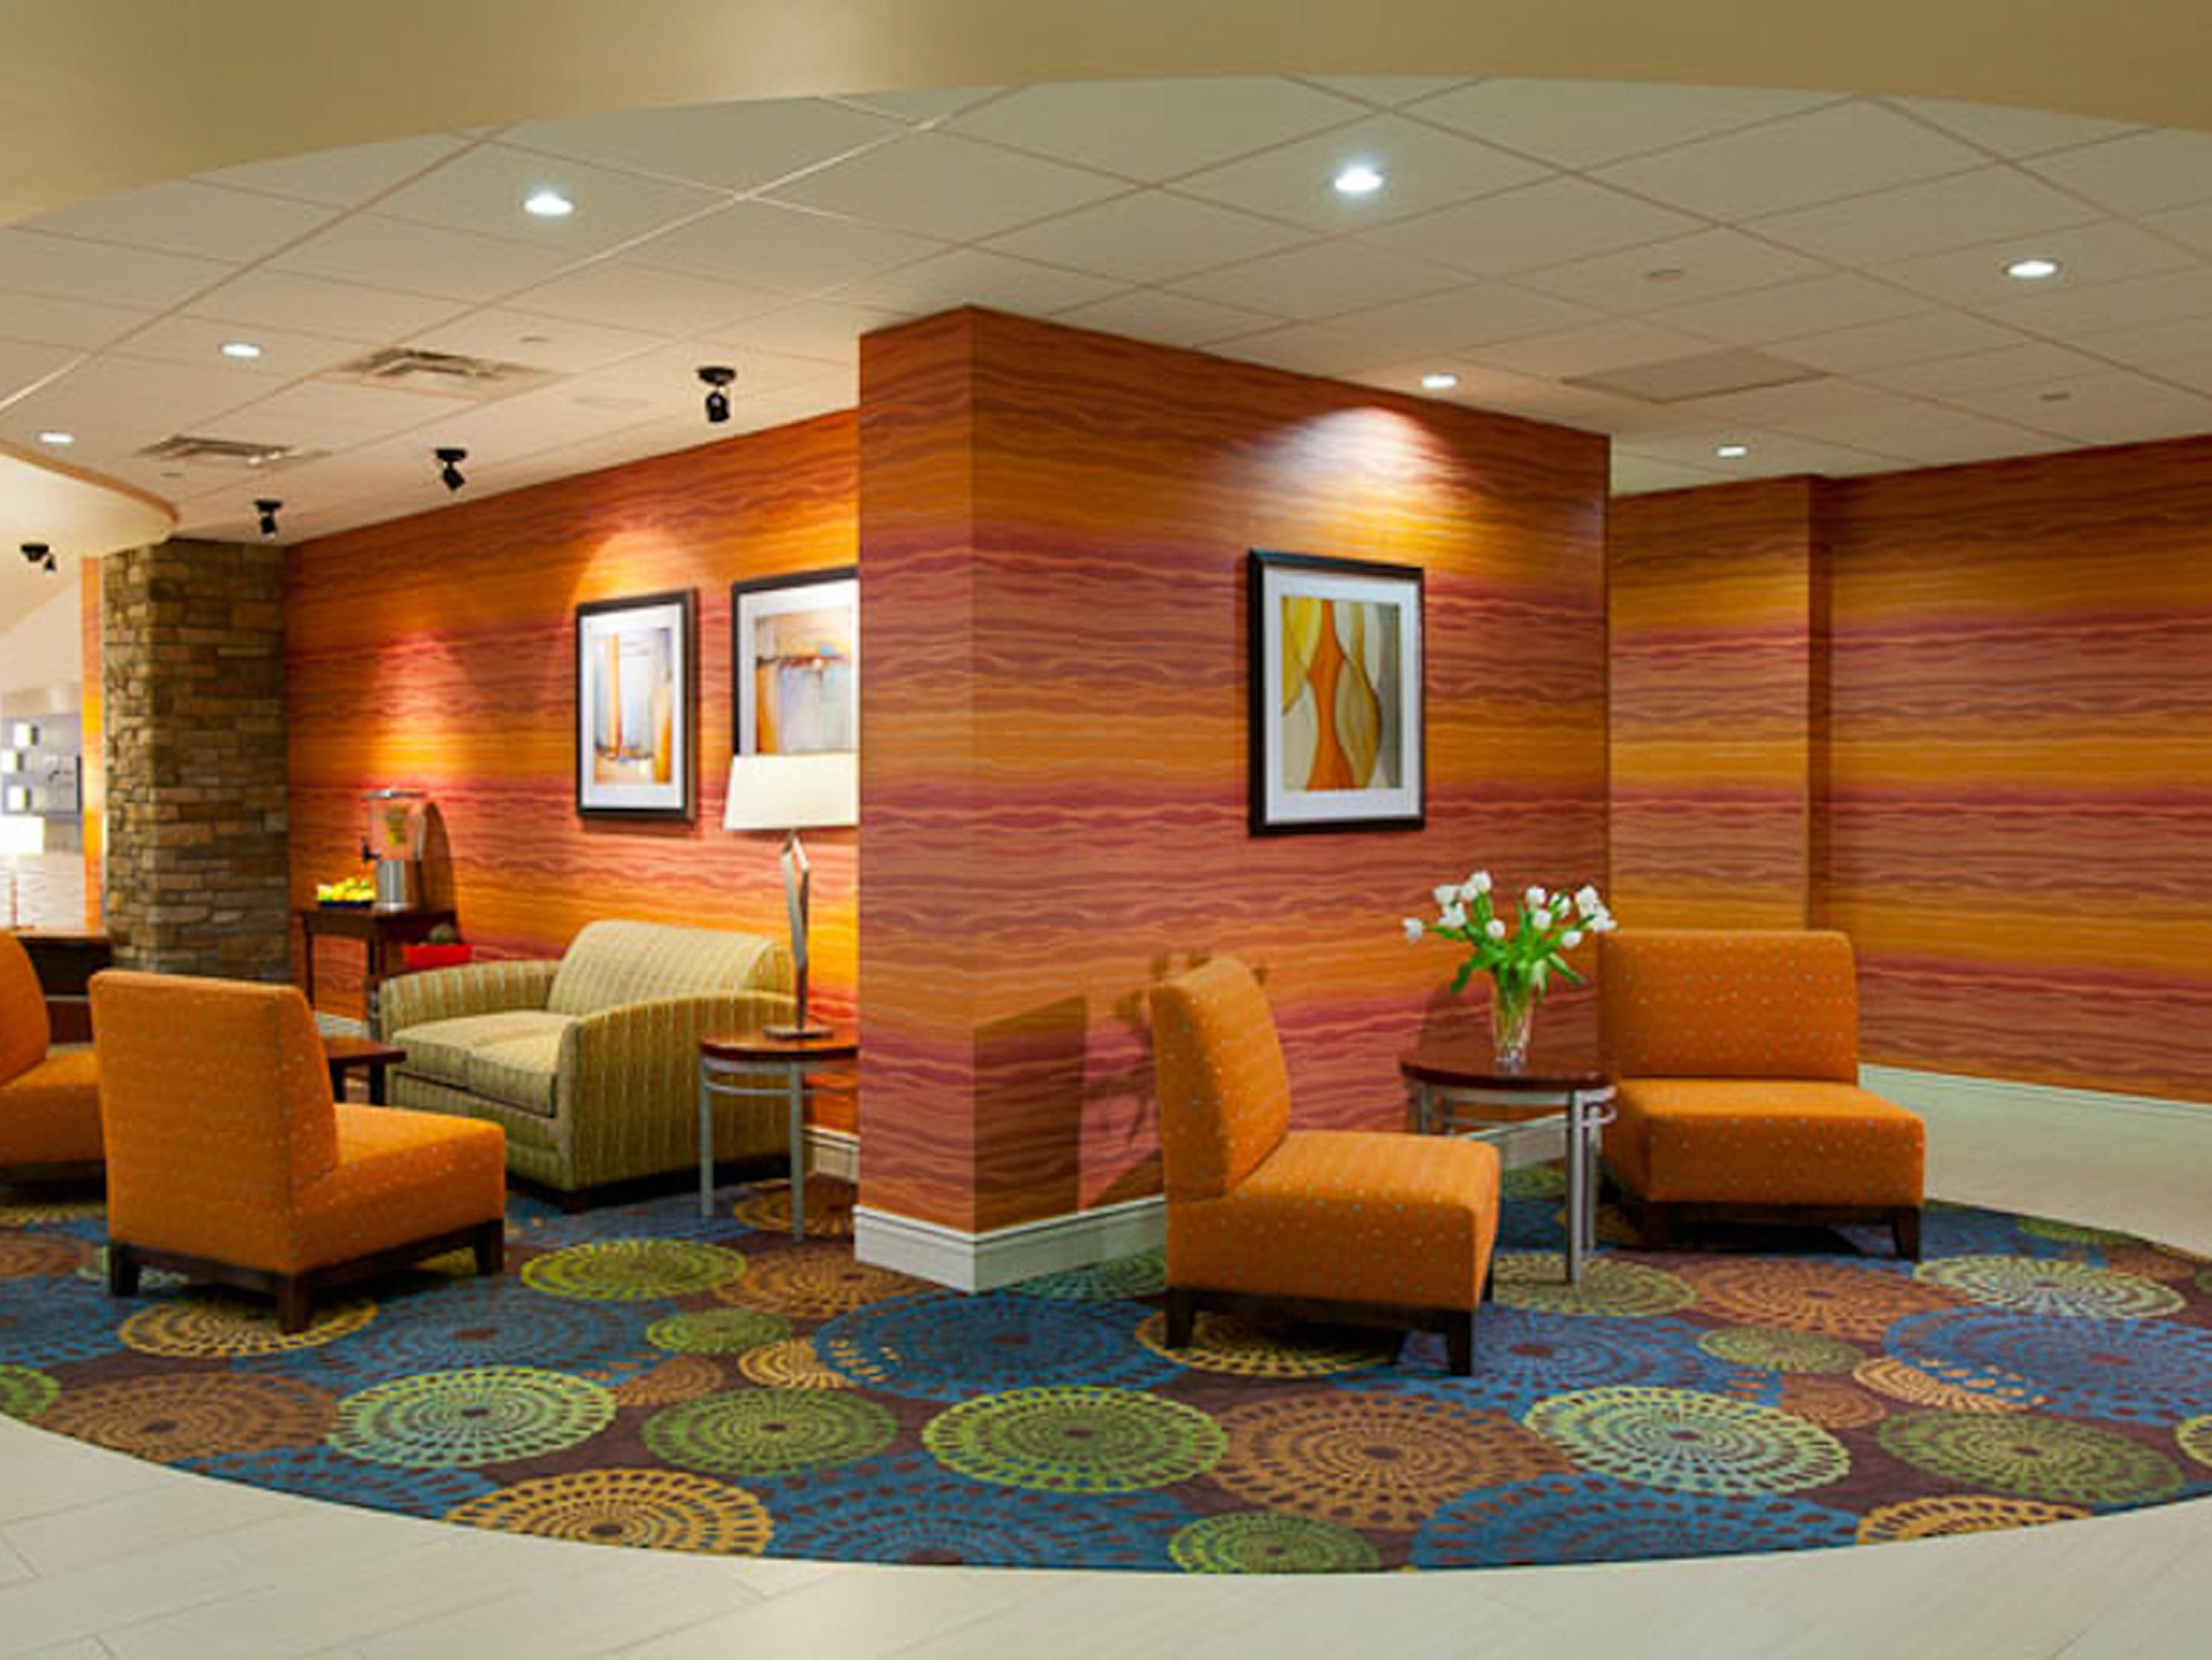 Holiday Inn Express Pittsburgh West Green Tree Upper Lobby Seating